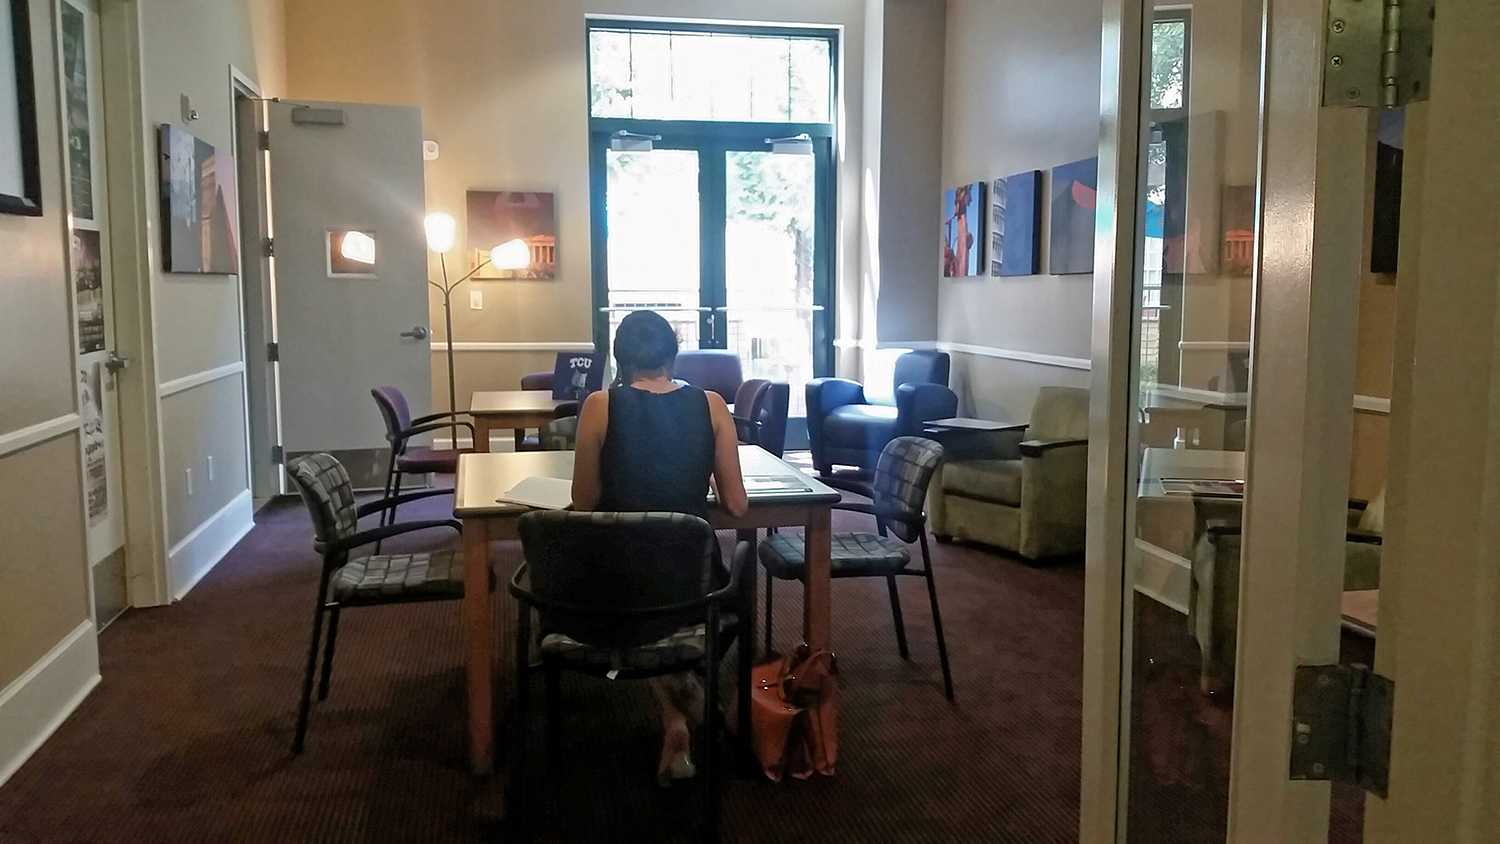 A student studies in the new transfer center space in the GrandMarc.